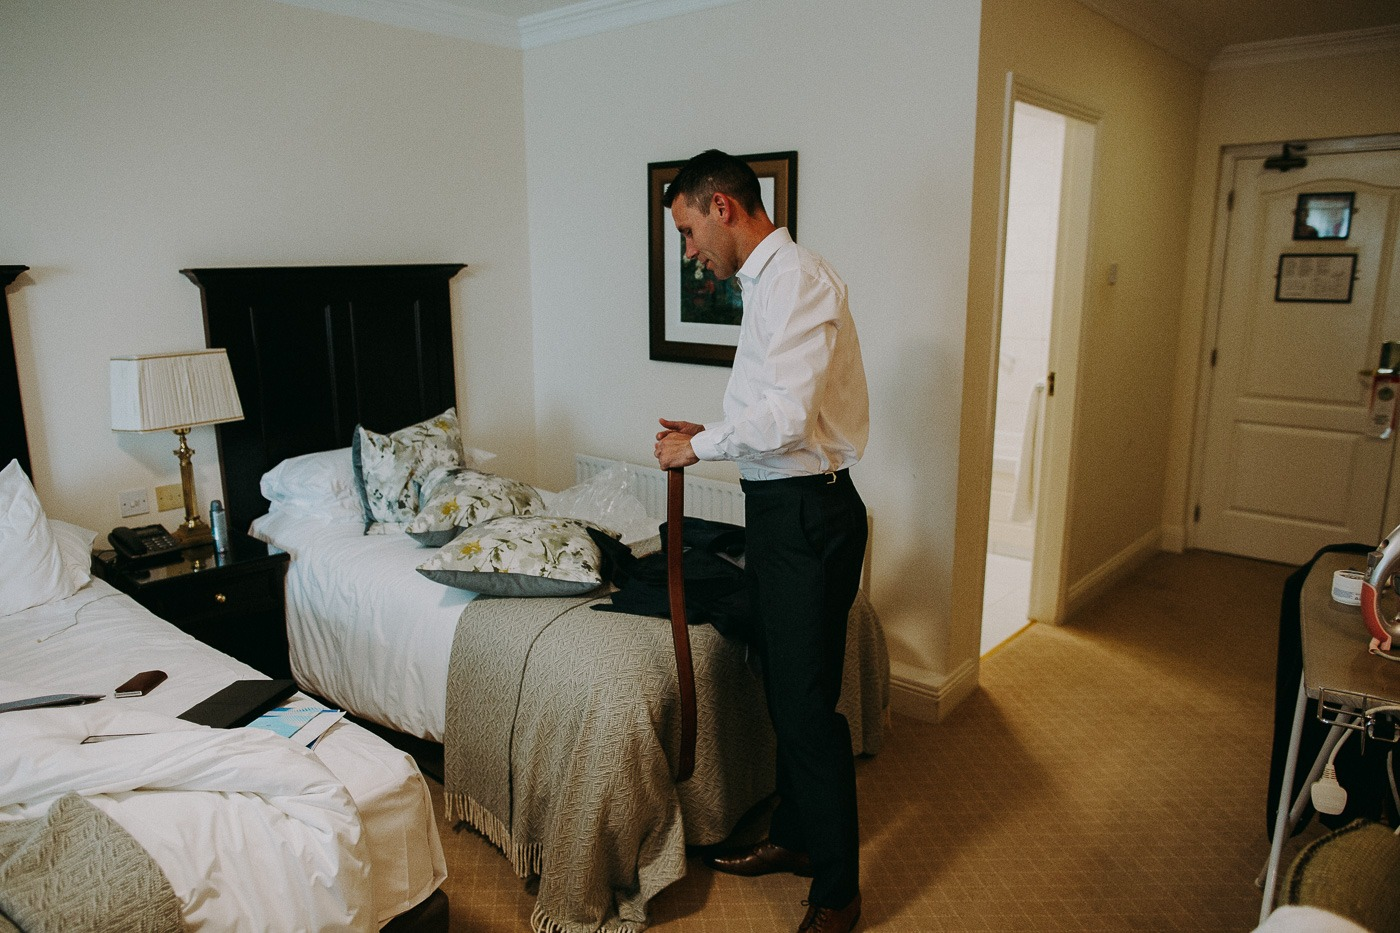 A bedroom with a bed and a man standing in a room